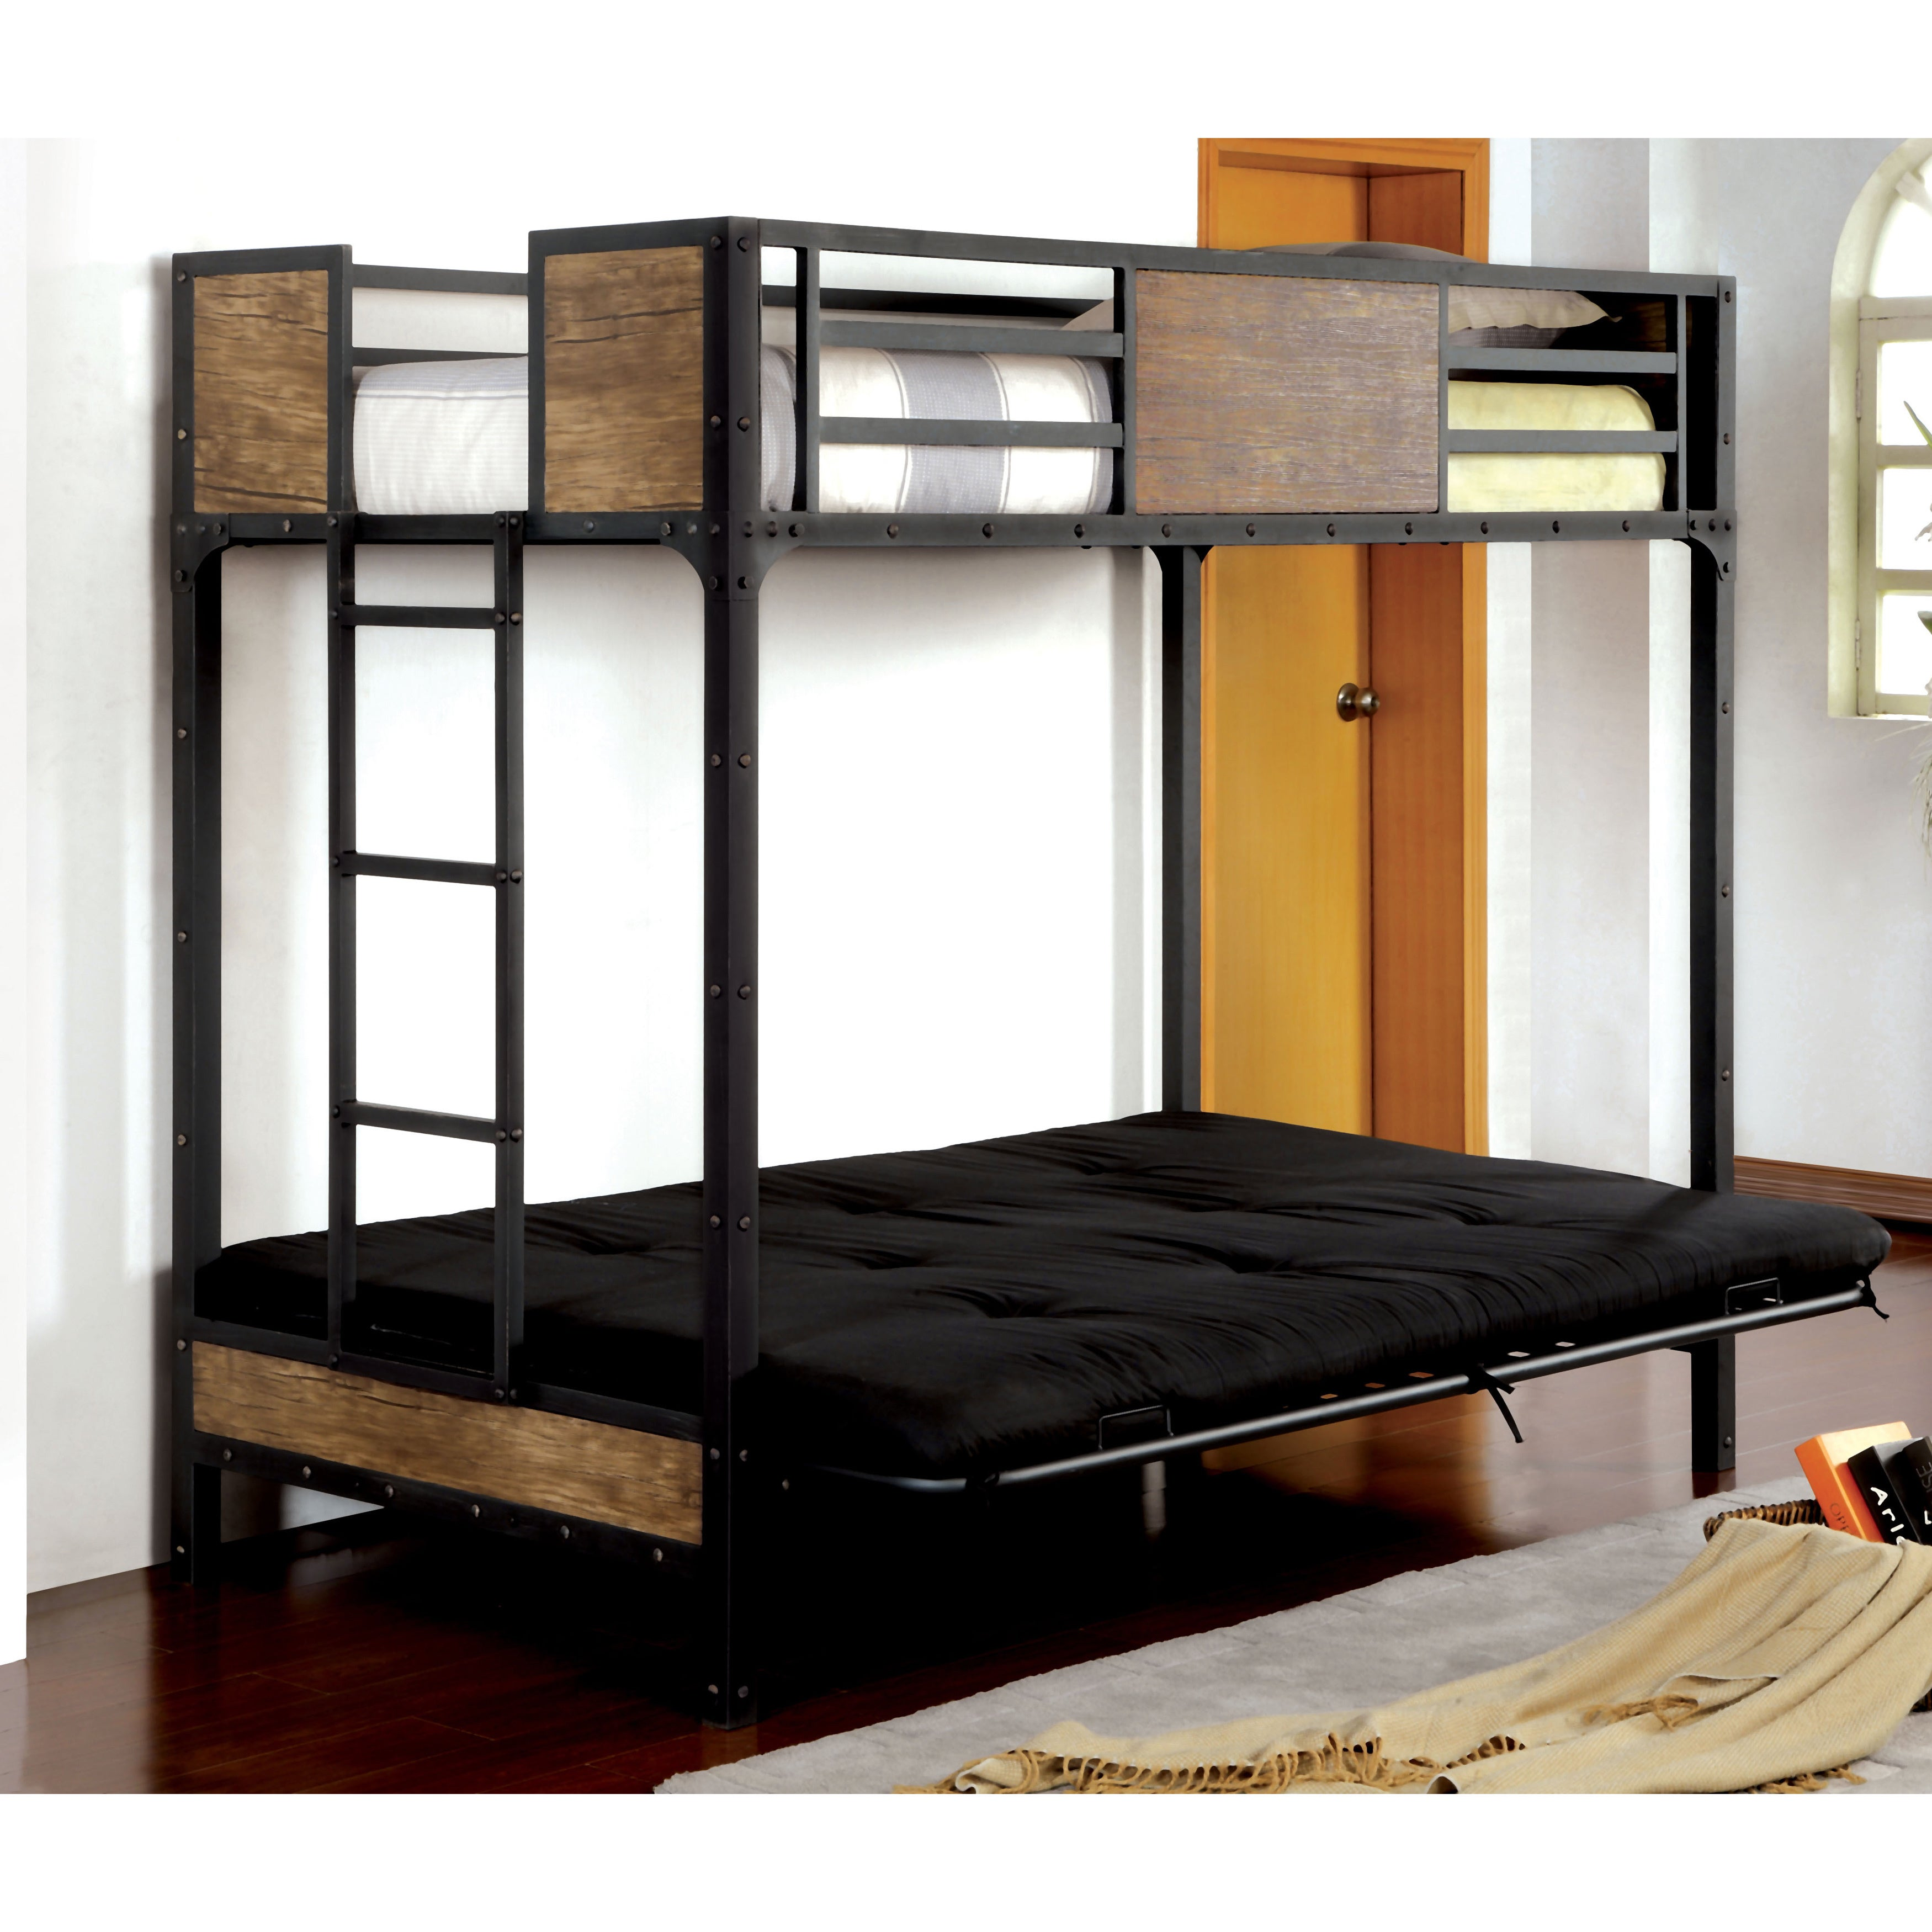 rectangular metal base furnituree fabric for with living black room extraordinary modern design futon on twin white bed mattress pictures sofa futons fearsome